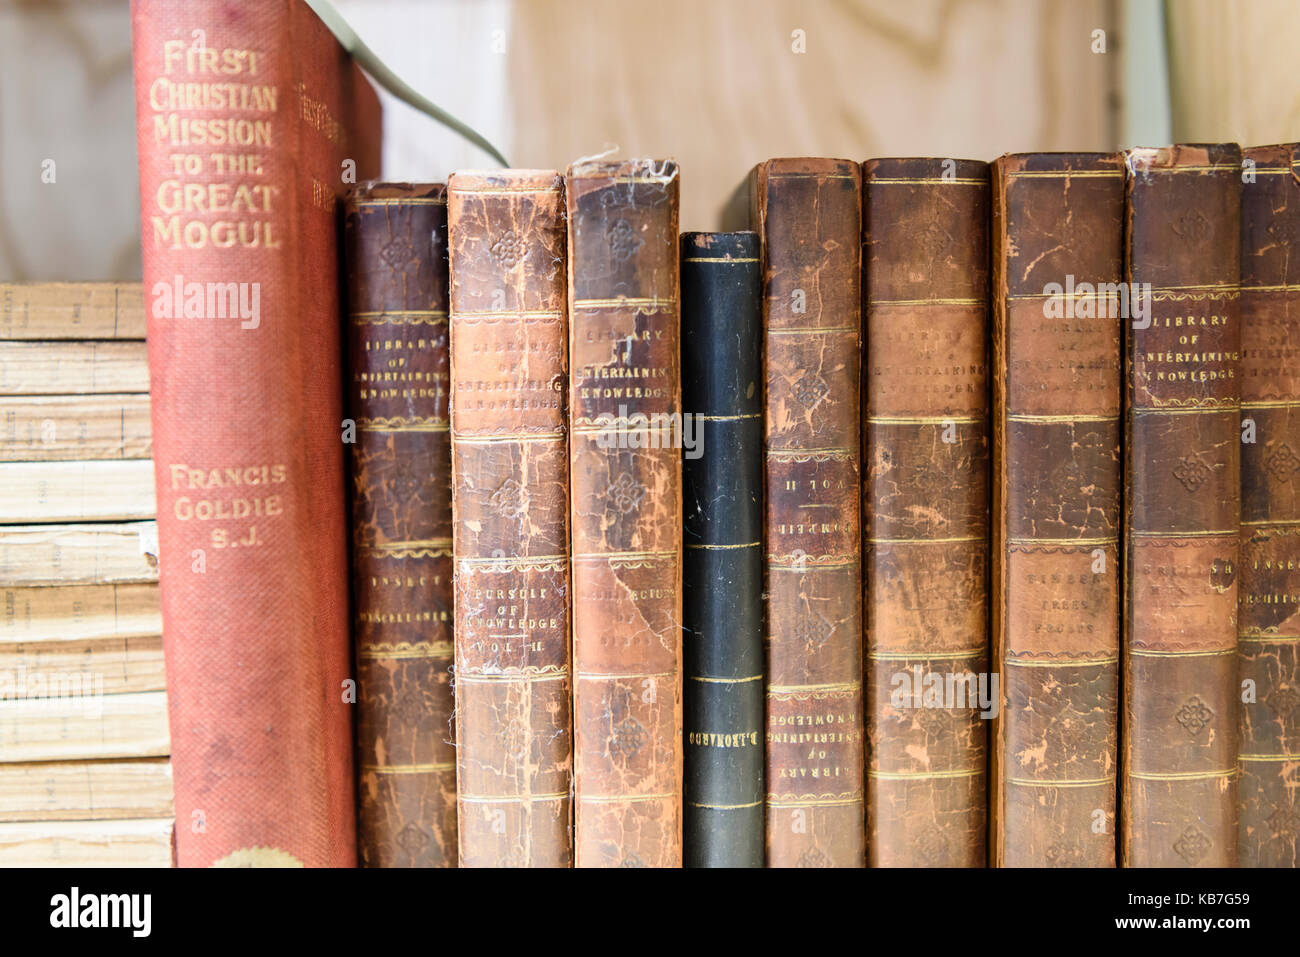 Old Irish theology books in a library specialising in Irish History. - Stock Image